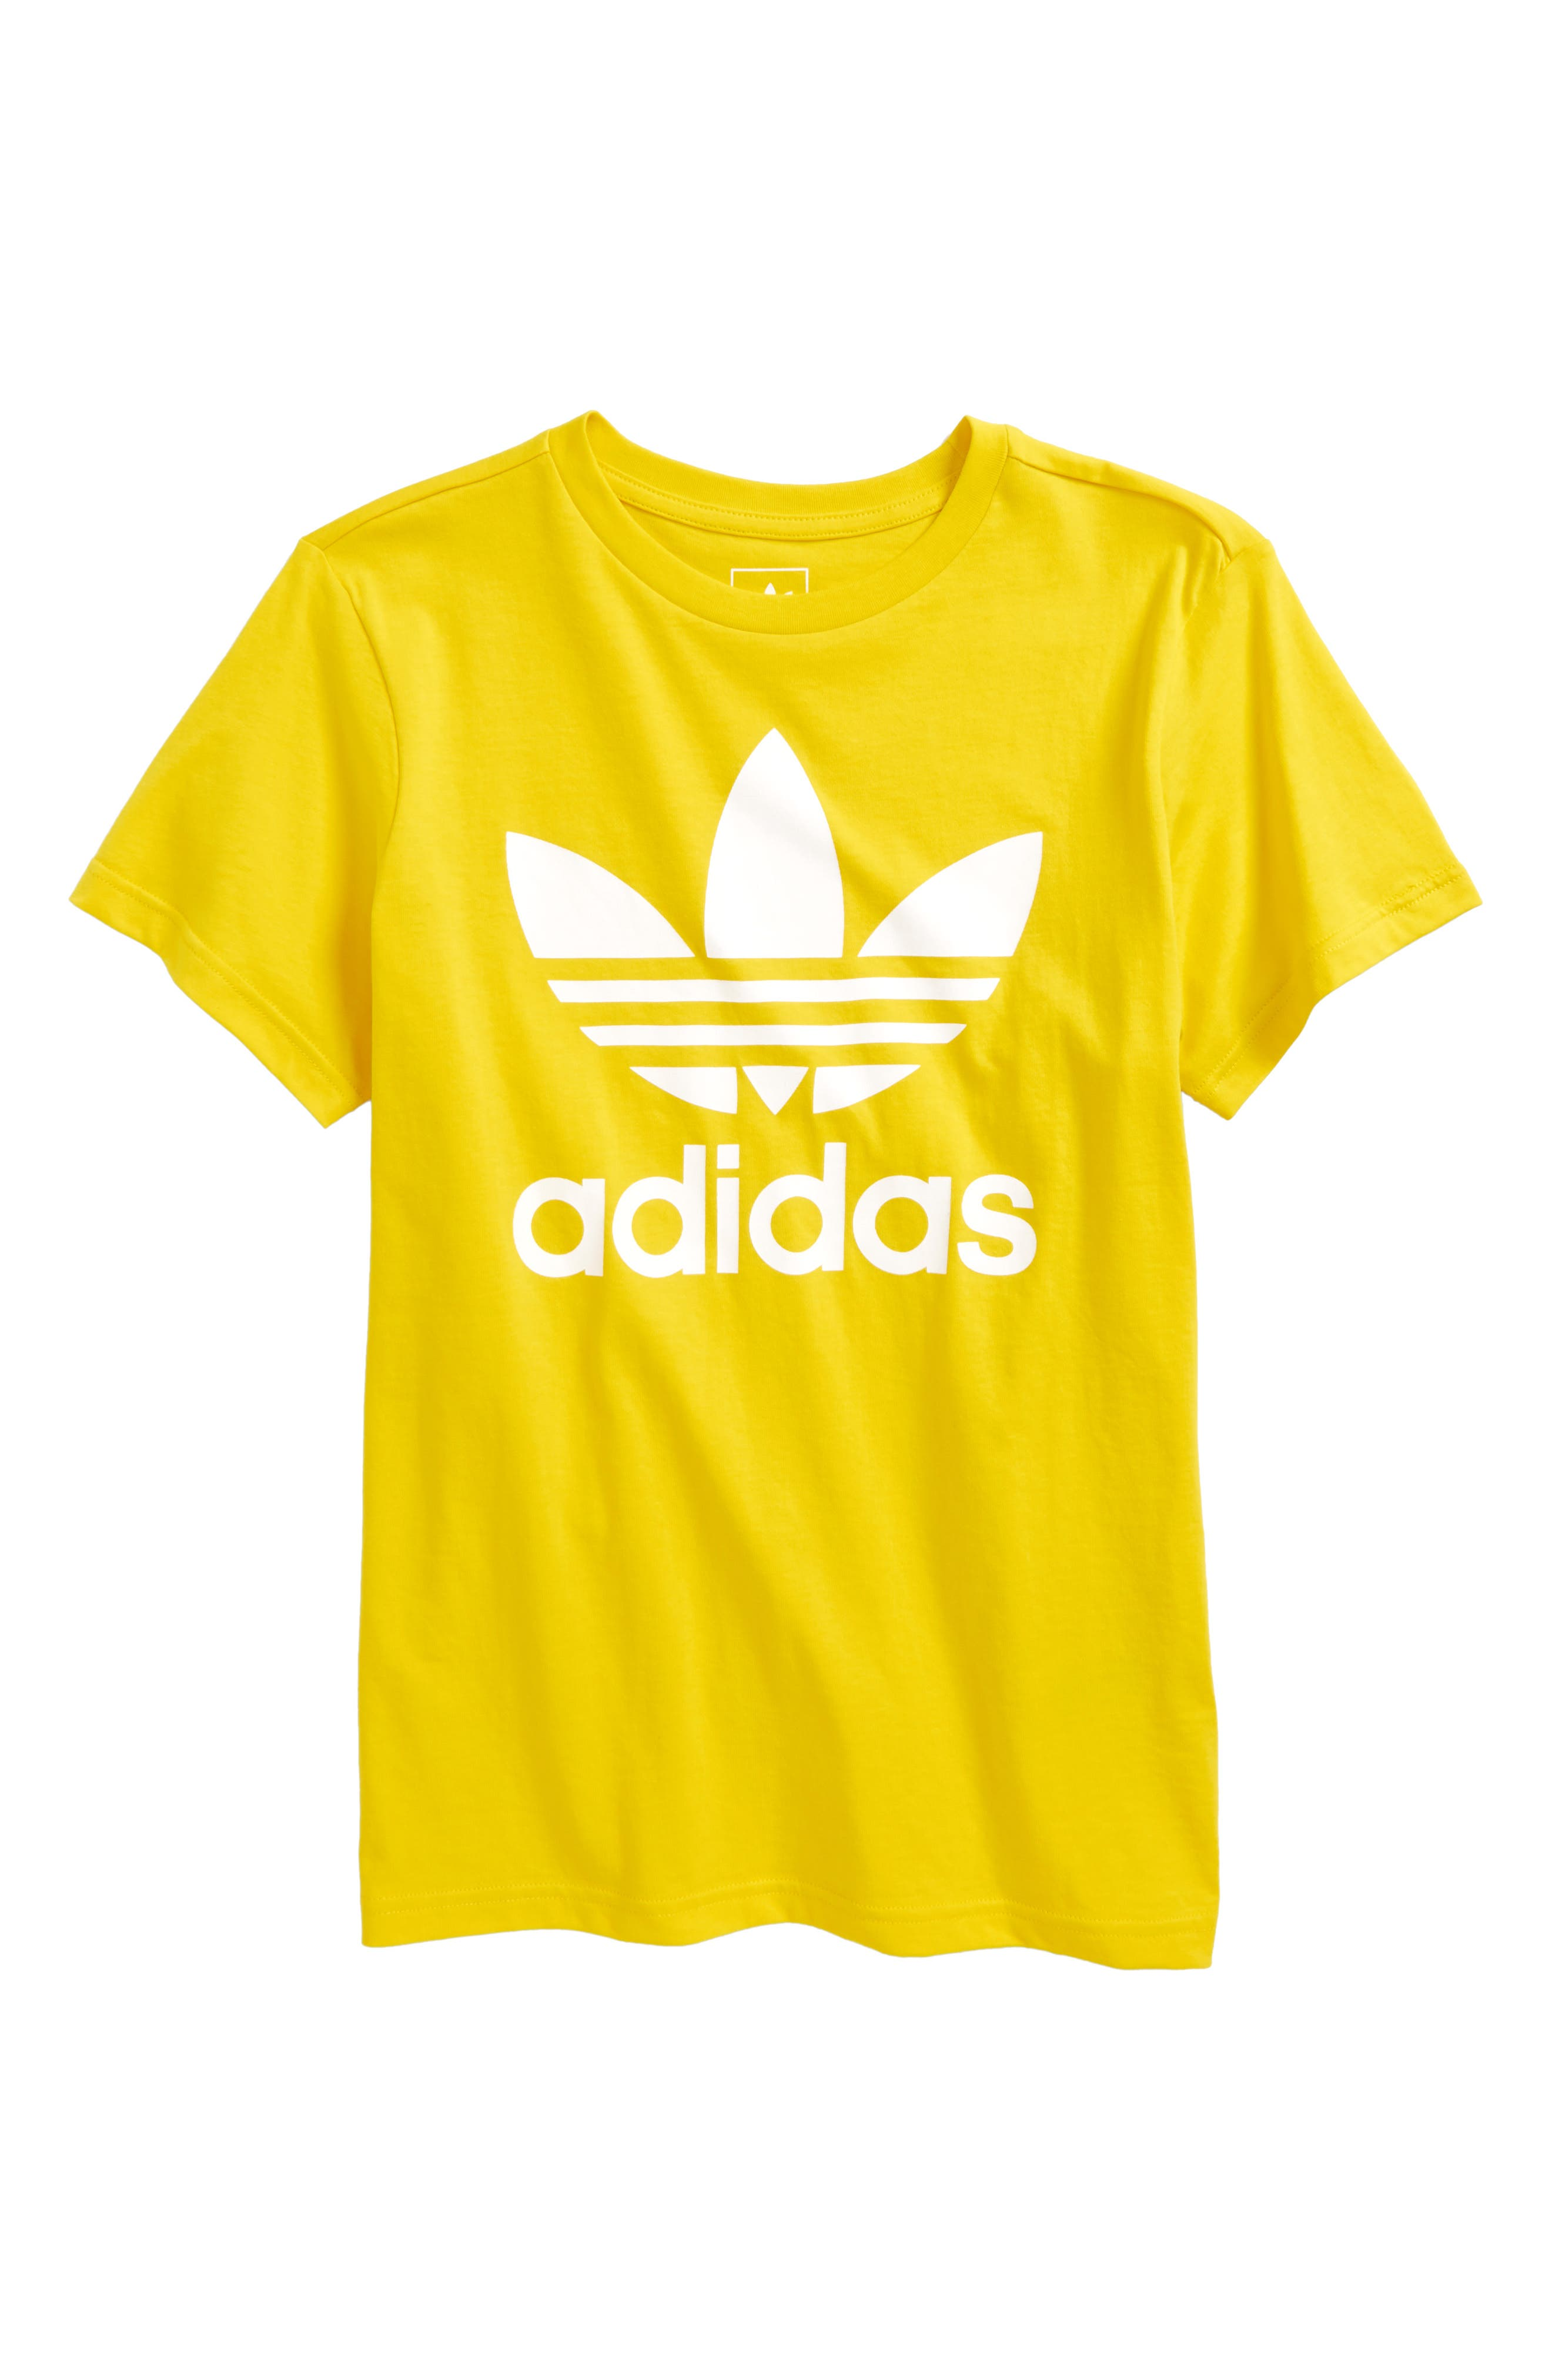 adidas Trefoil Logo Graphic Tee,                         Main,                         color, 734